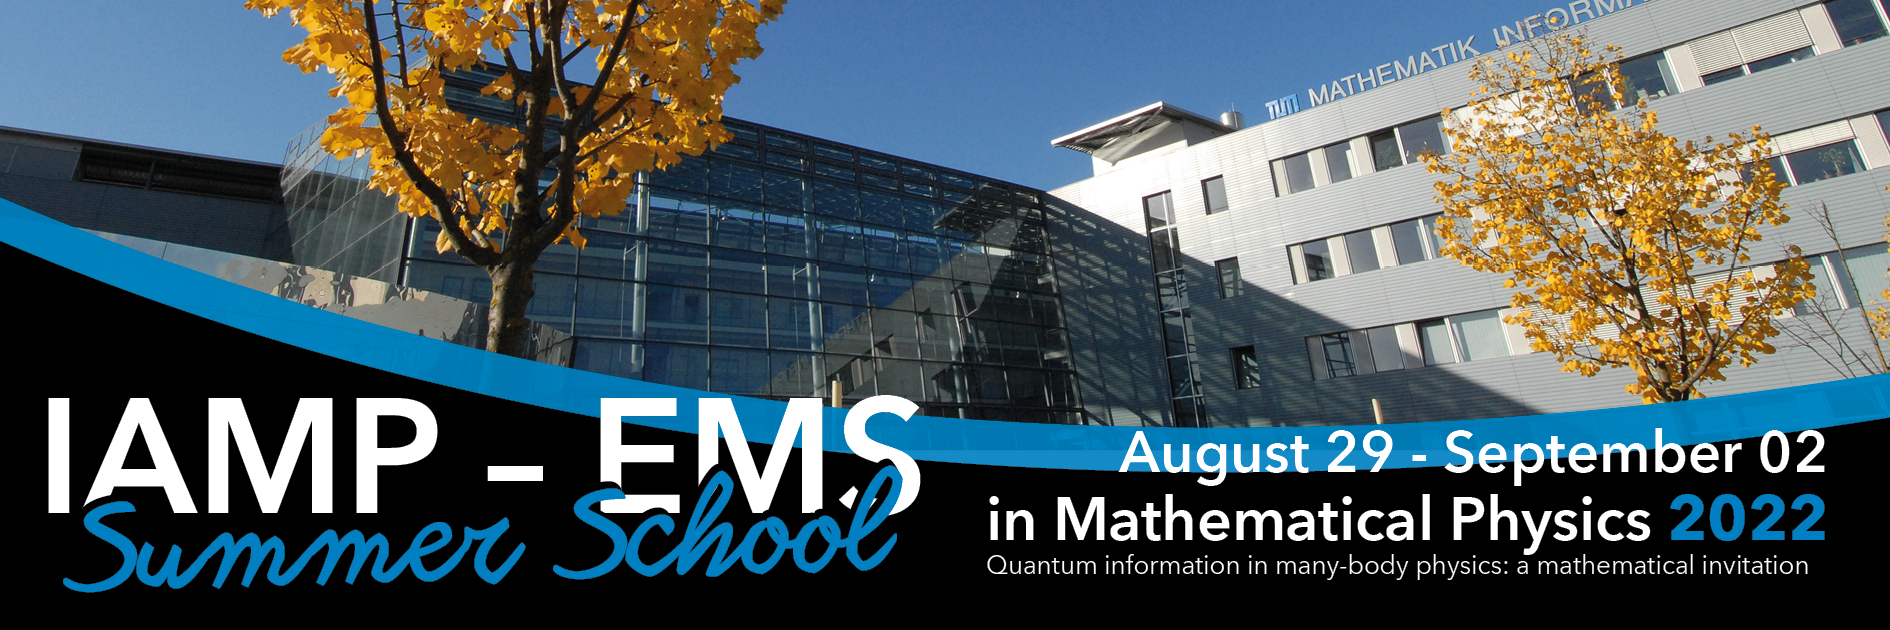 Summerschool in Mathematical Physics 2020